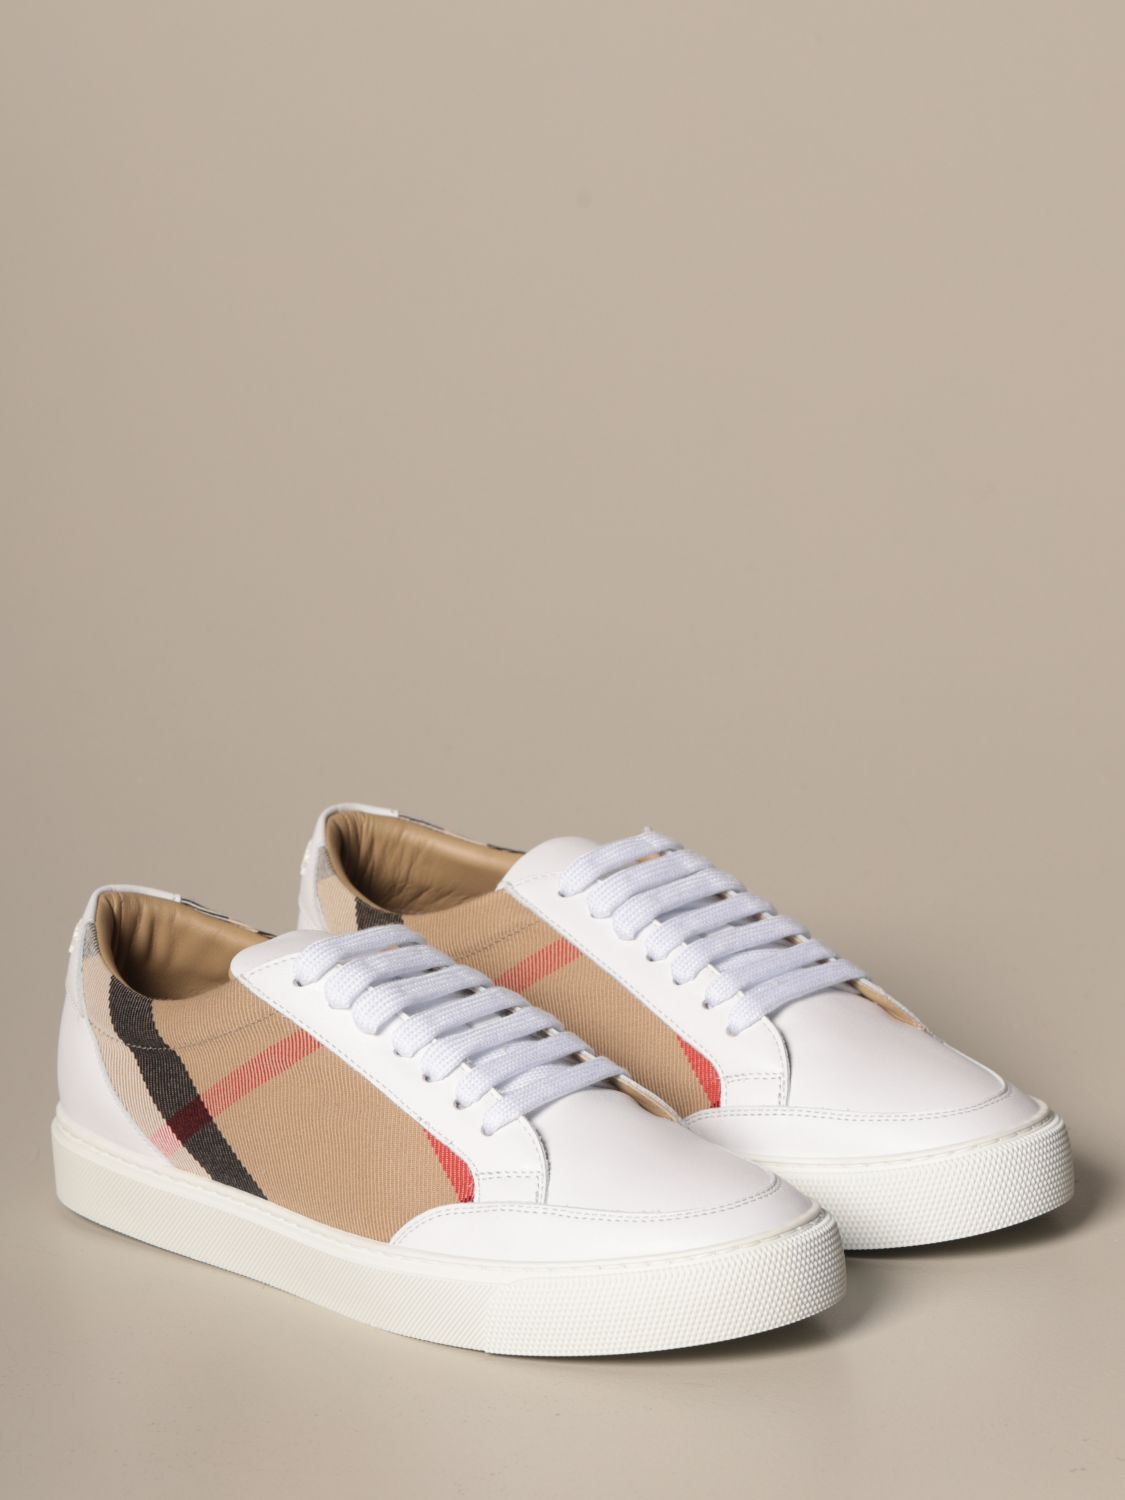 Sneakers Burberry: Sneakers women Burberry white 2